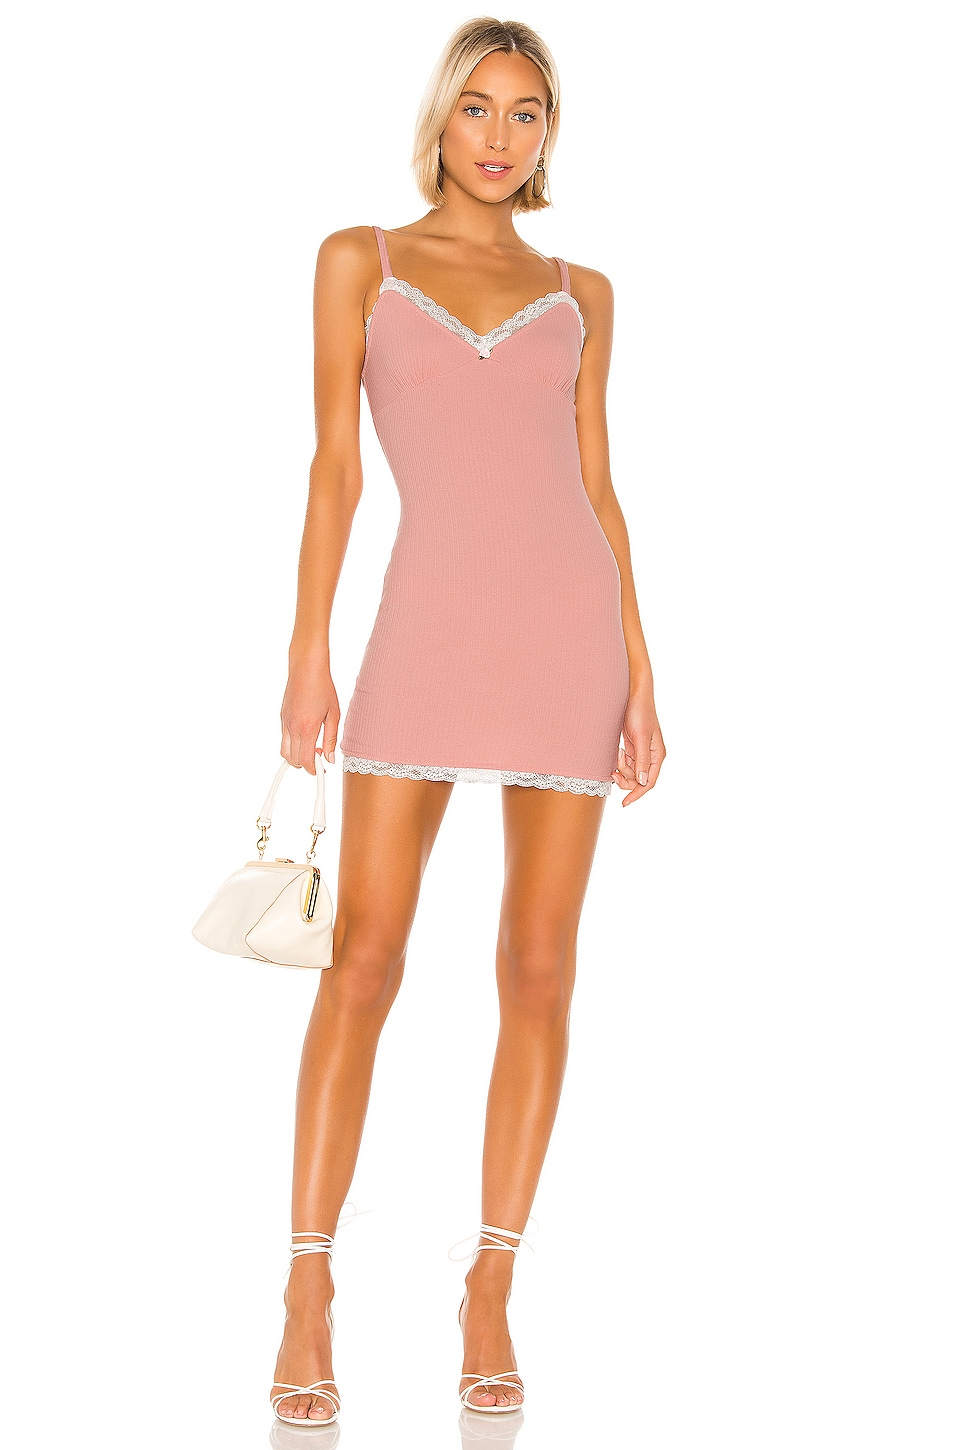 Privacy Please Shannon Mini Dress in Rose Pink